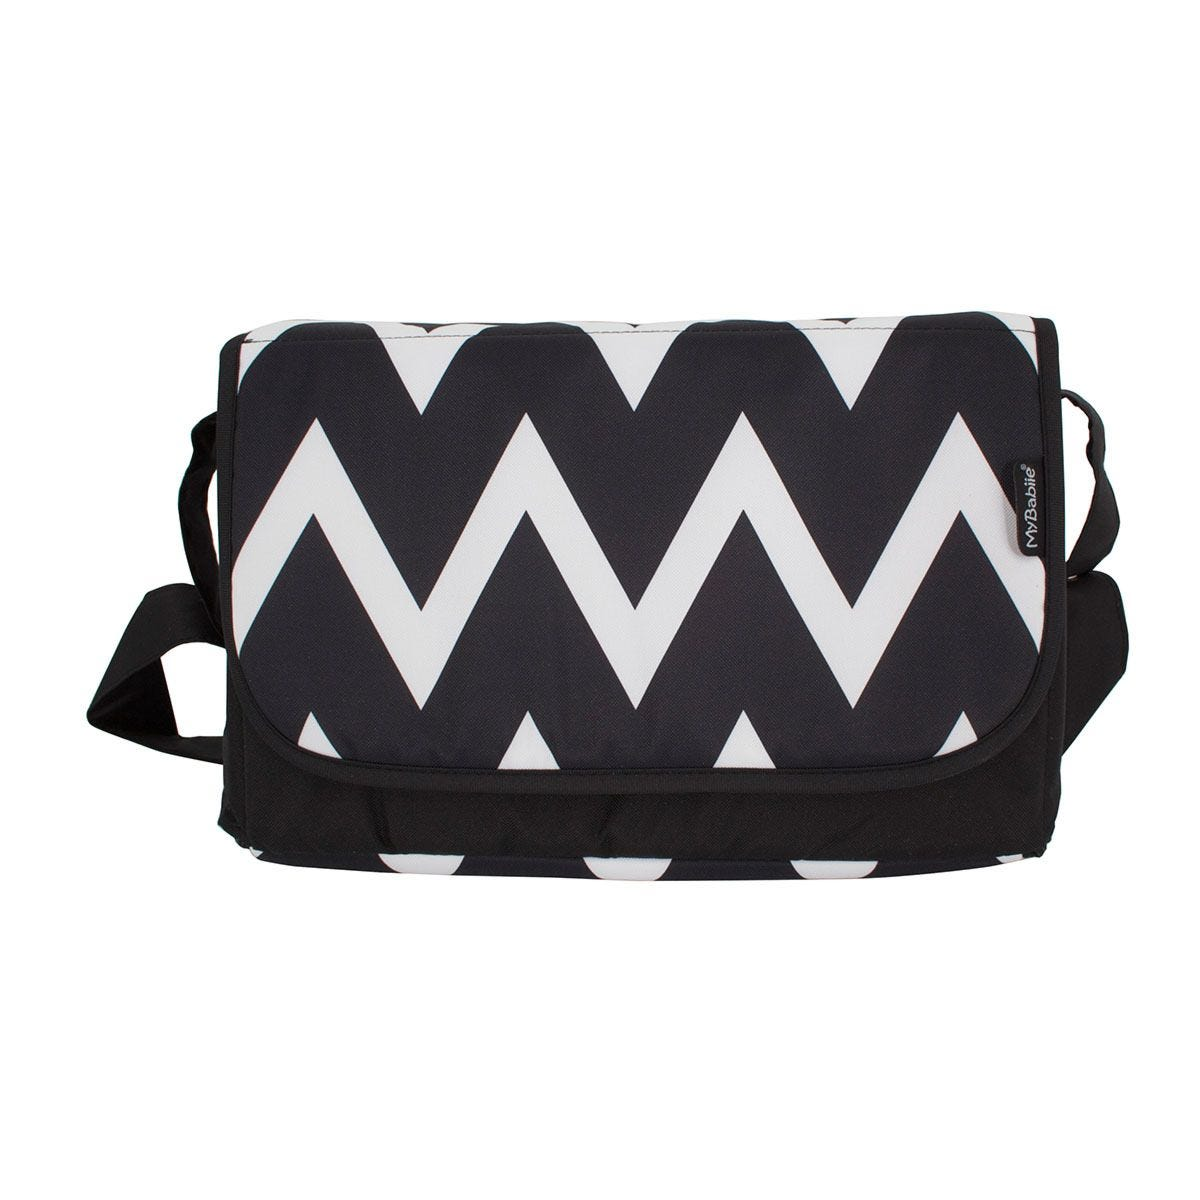 My Babiie Changing Bag - Black and White Chevron